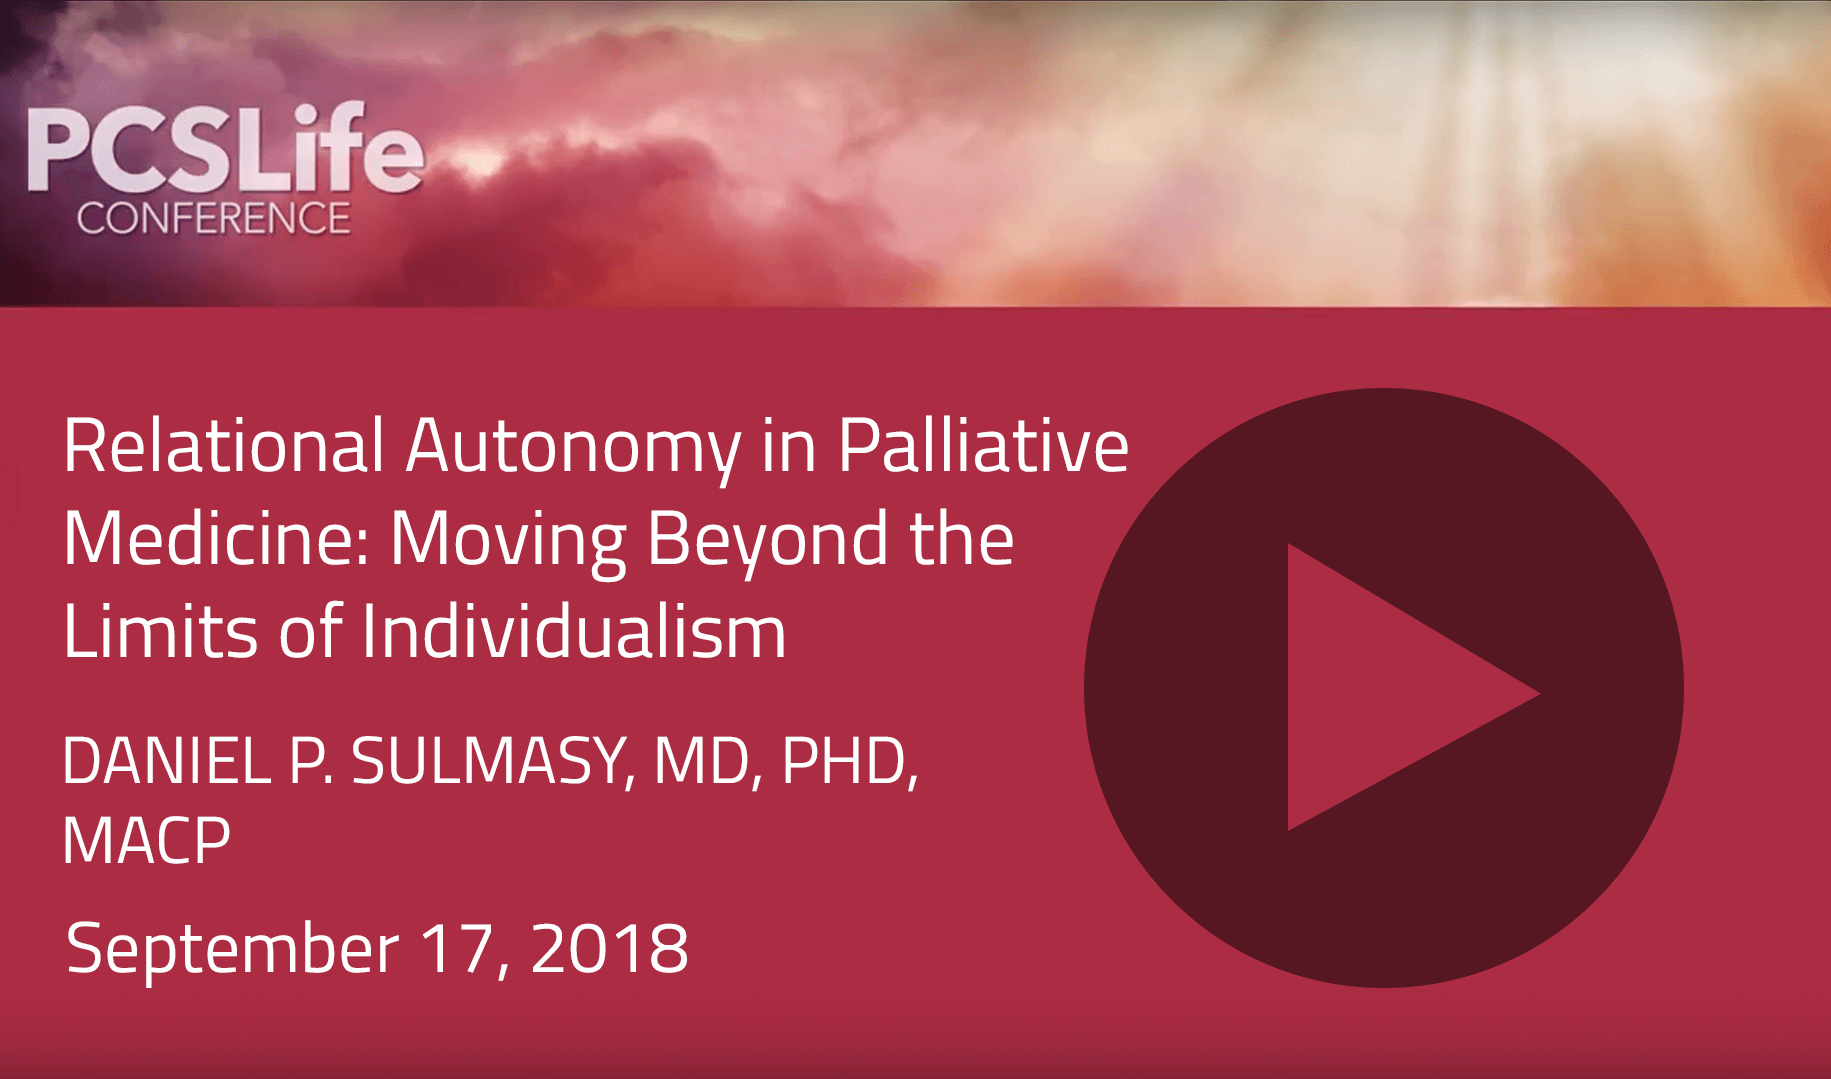 Relational Autonomy in Palliative Medicine: Moving Beyond the Limits of Individualism by Daniel P. Sulmasy